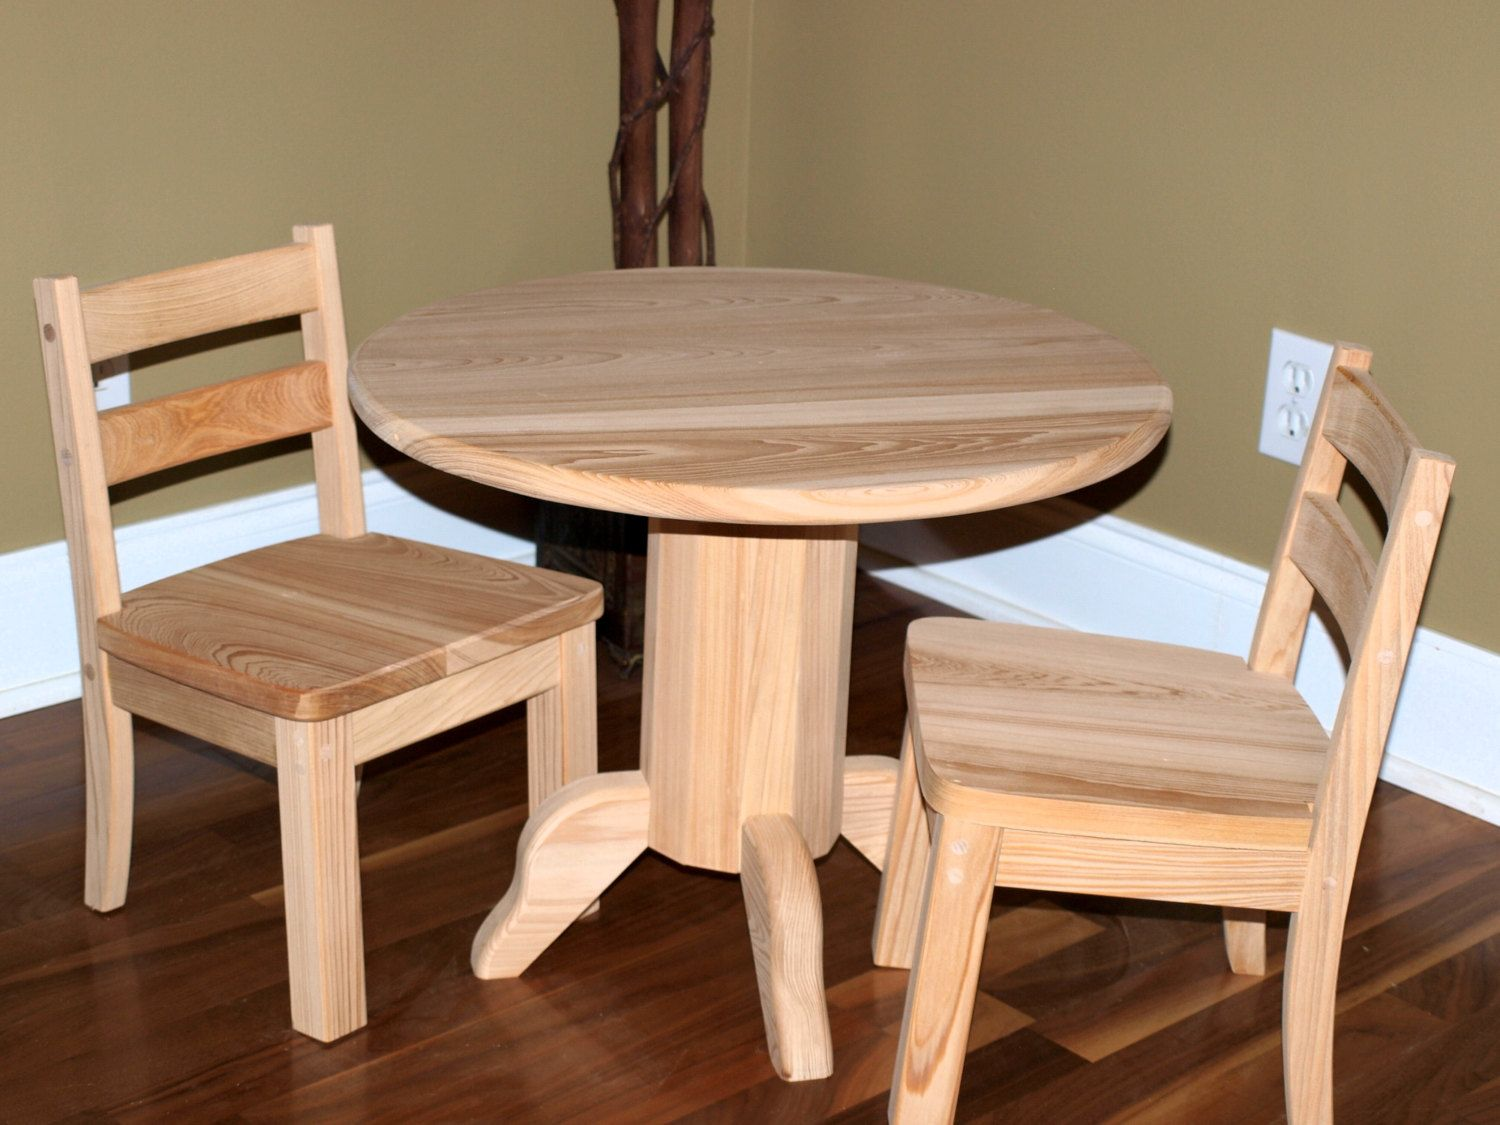 Unfinished Cypress Childs Table u0026 Chair Set & Unfinished Round Table u0026 Chair Set   Rounding Wood projects and Woods